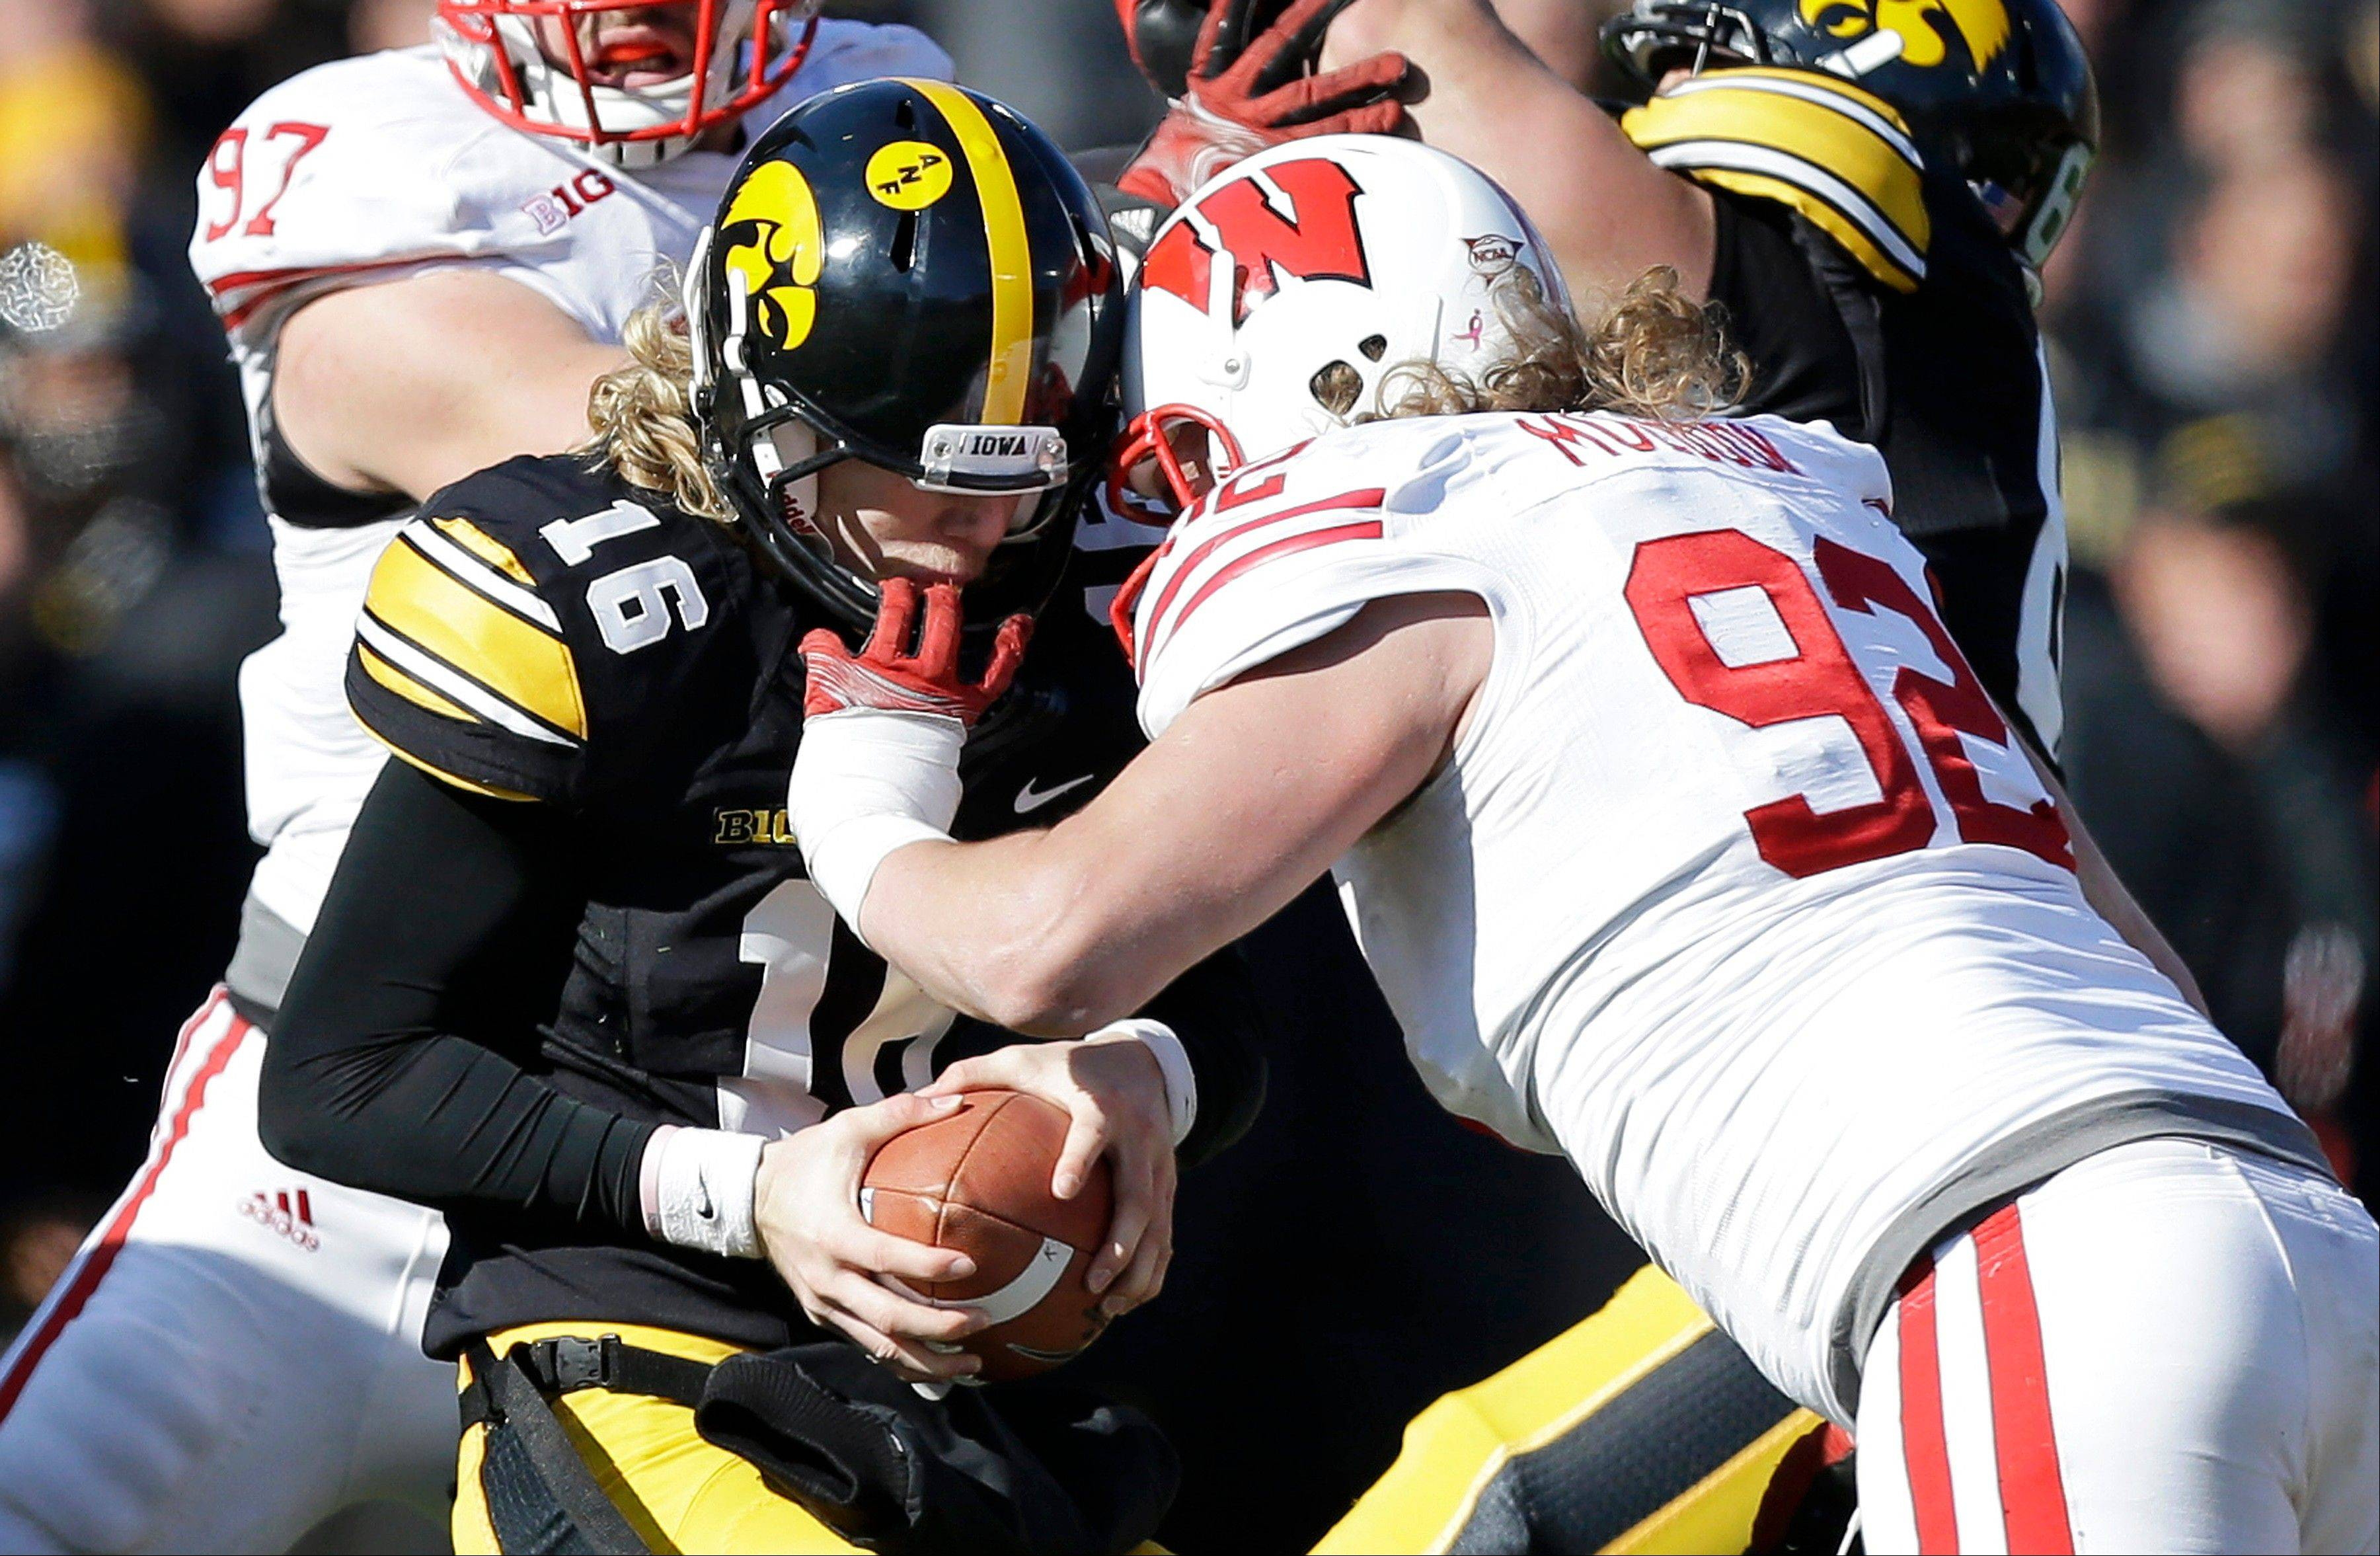 Iowa quarterback C.J. Beathard (16) is sacked by Wisconsin defensive end Pat Muldoon in Iowa City, Iowa. Wisconsin won 28-9.